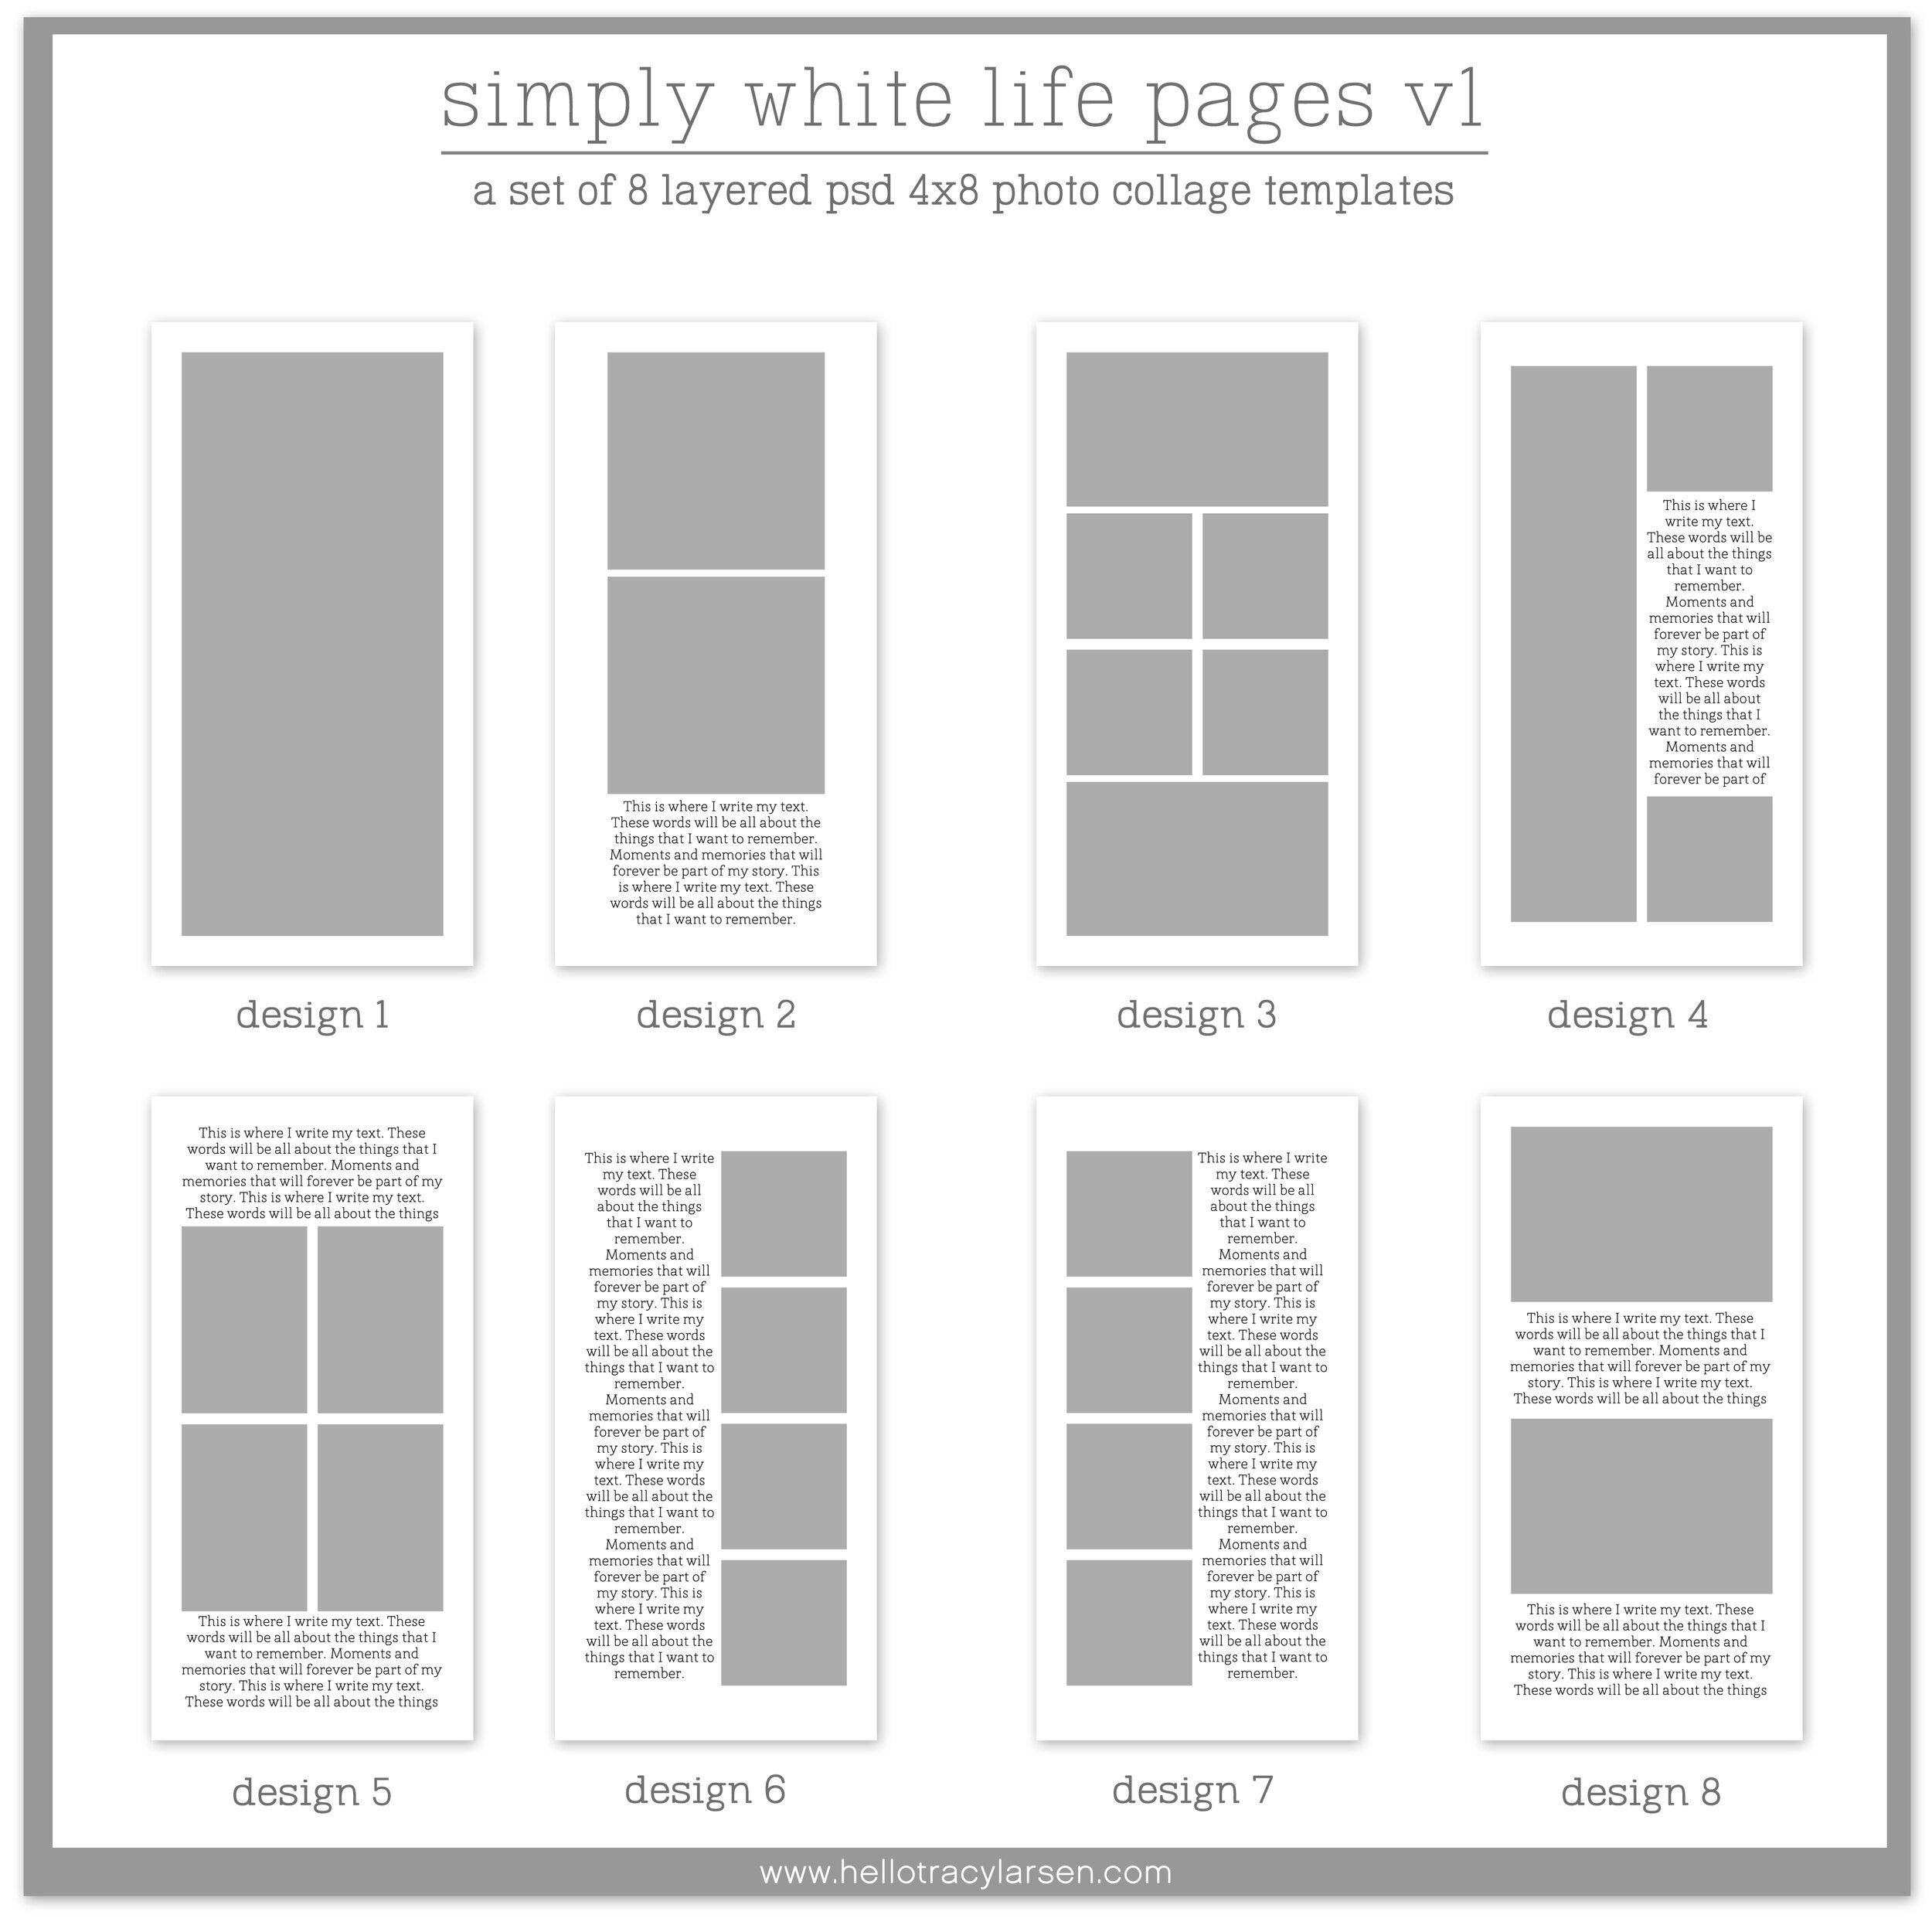 Travelers Notebook + Journal Templates v1      Simply White Life Pages 4x8 ==>> Digital photo collage page templates for print or digital projects including project life, pocket scrapbooking and digital memory keeping >>> hellotracylarsen.com/shop